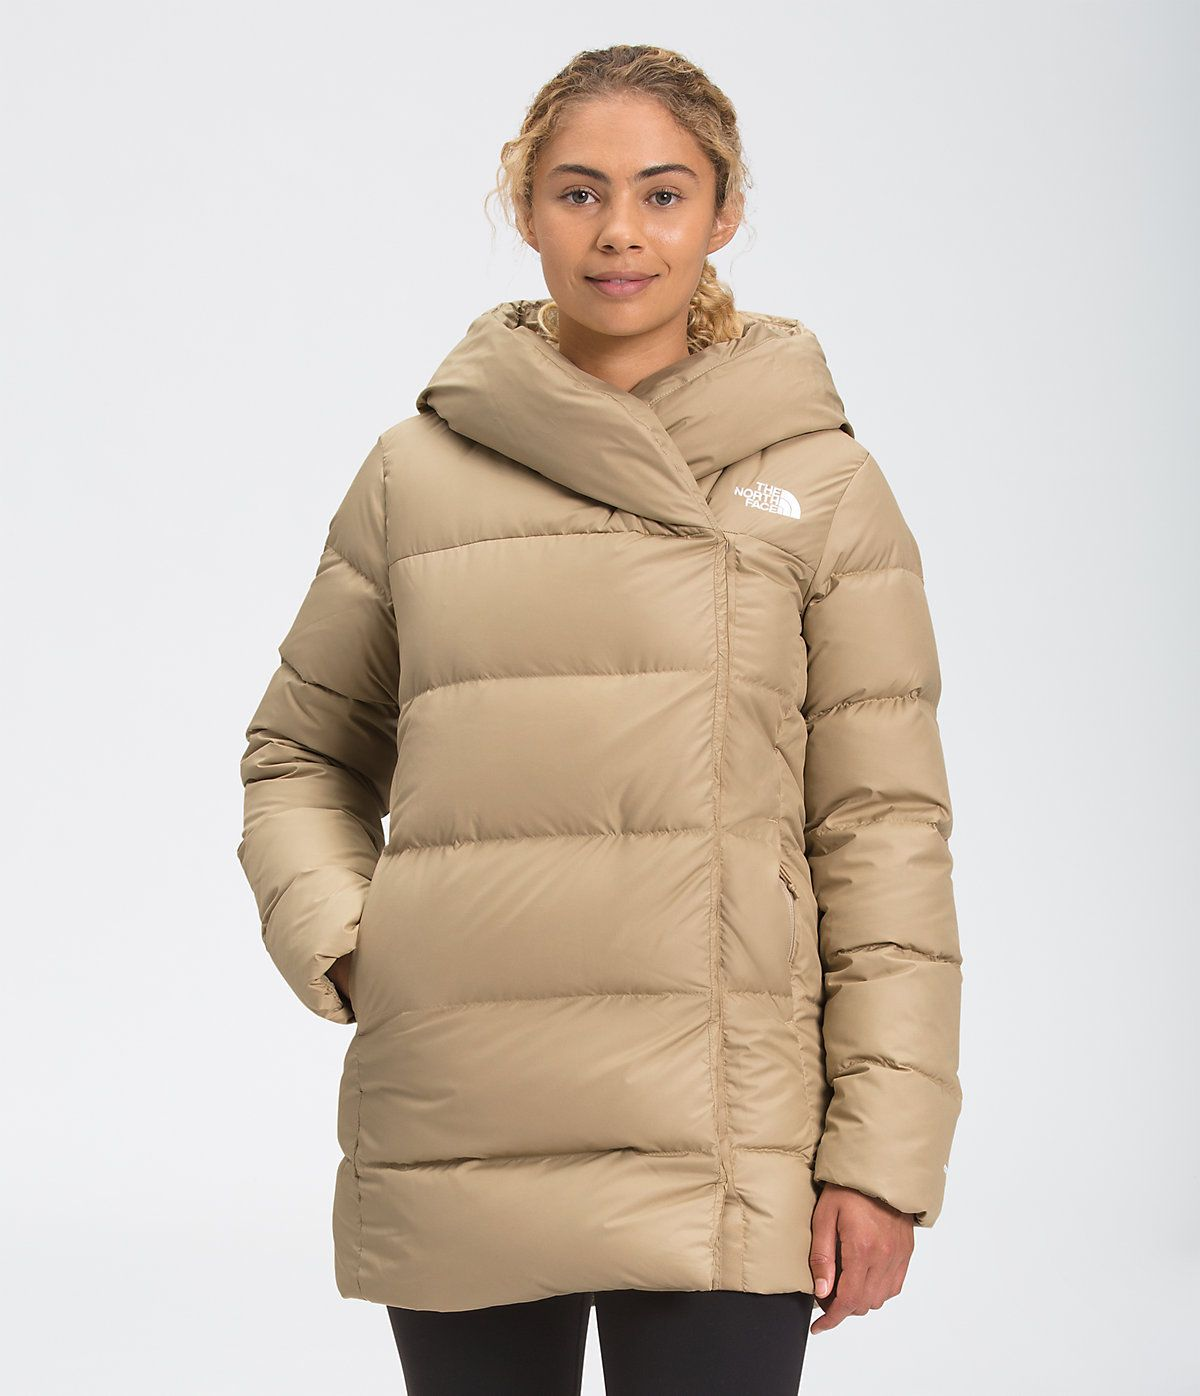 Women S Bagley Down Coat The North Face The North Face North Face Coat Bagley [ 1396 x 1200 Pixel ]